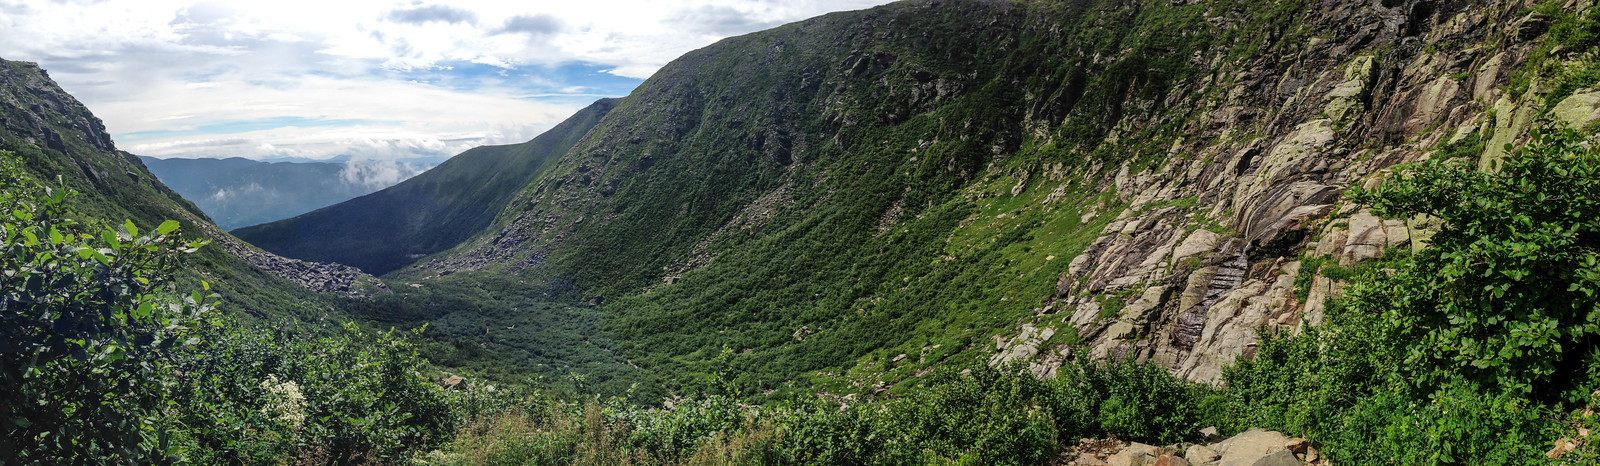 view back from Tuckerman's headwall